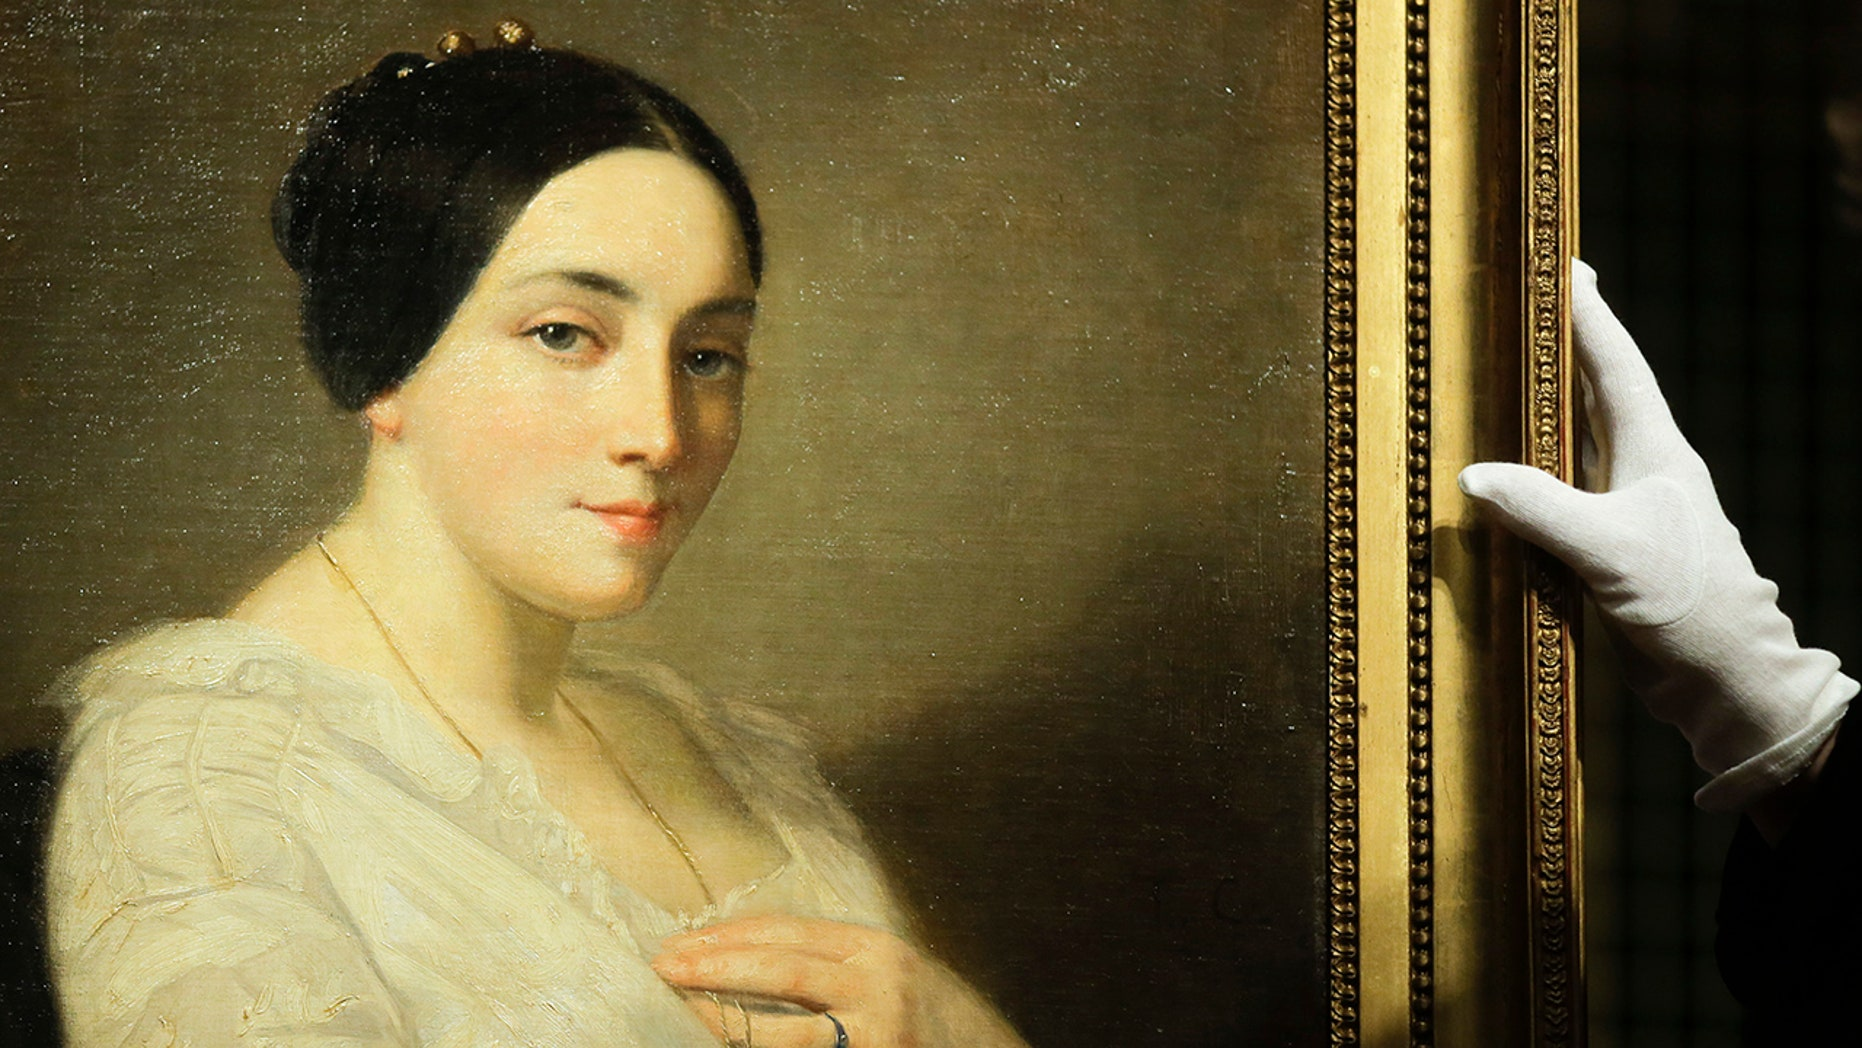 The painting 'Portrait of a Seated Young Woman' by Thomas Couture was discovered in the art trove of late collector Cornelius Gurlitt and belonged to Georges Mandel, a Jewish French politician, and resistance figure who was executed during World War II. (AP Photo/Markus Schreiber)